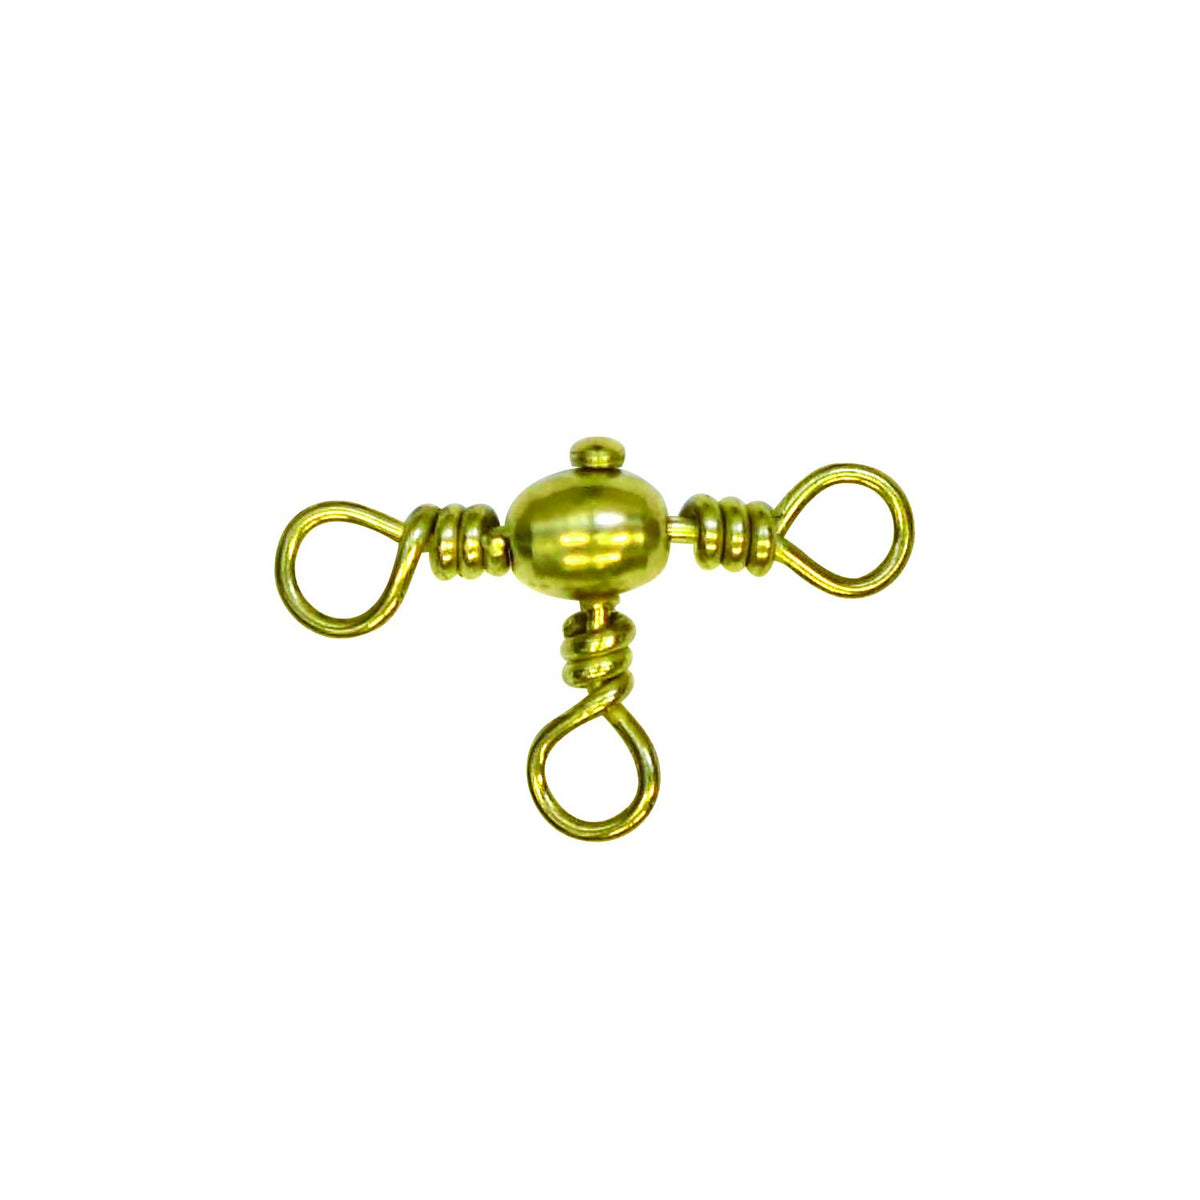 Eagle Claw Crossline Swivel Swivels & Hardware Eagle Claw #12 - QTY: 8